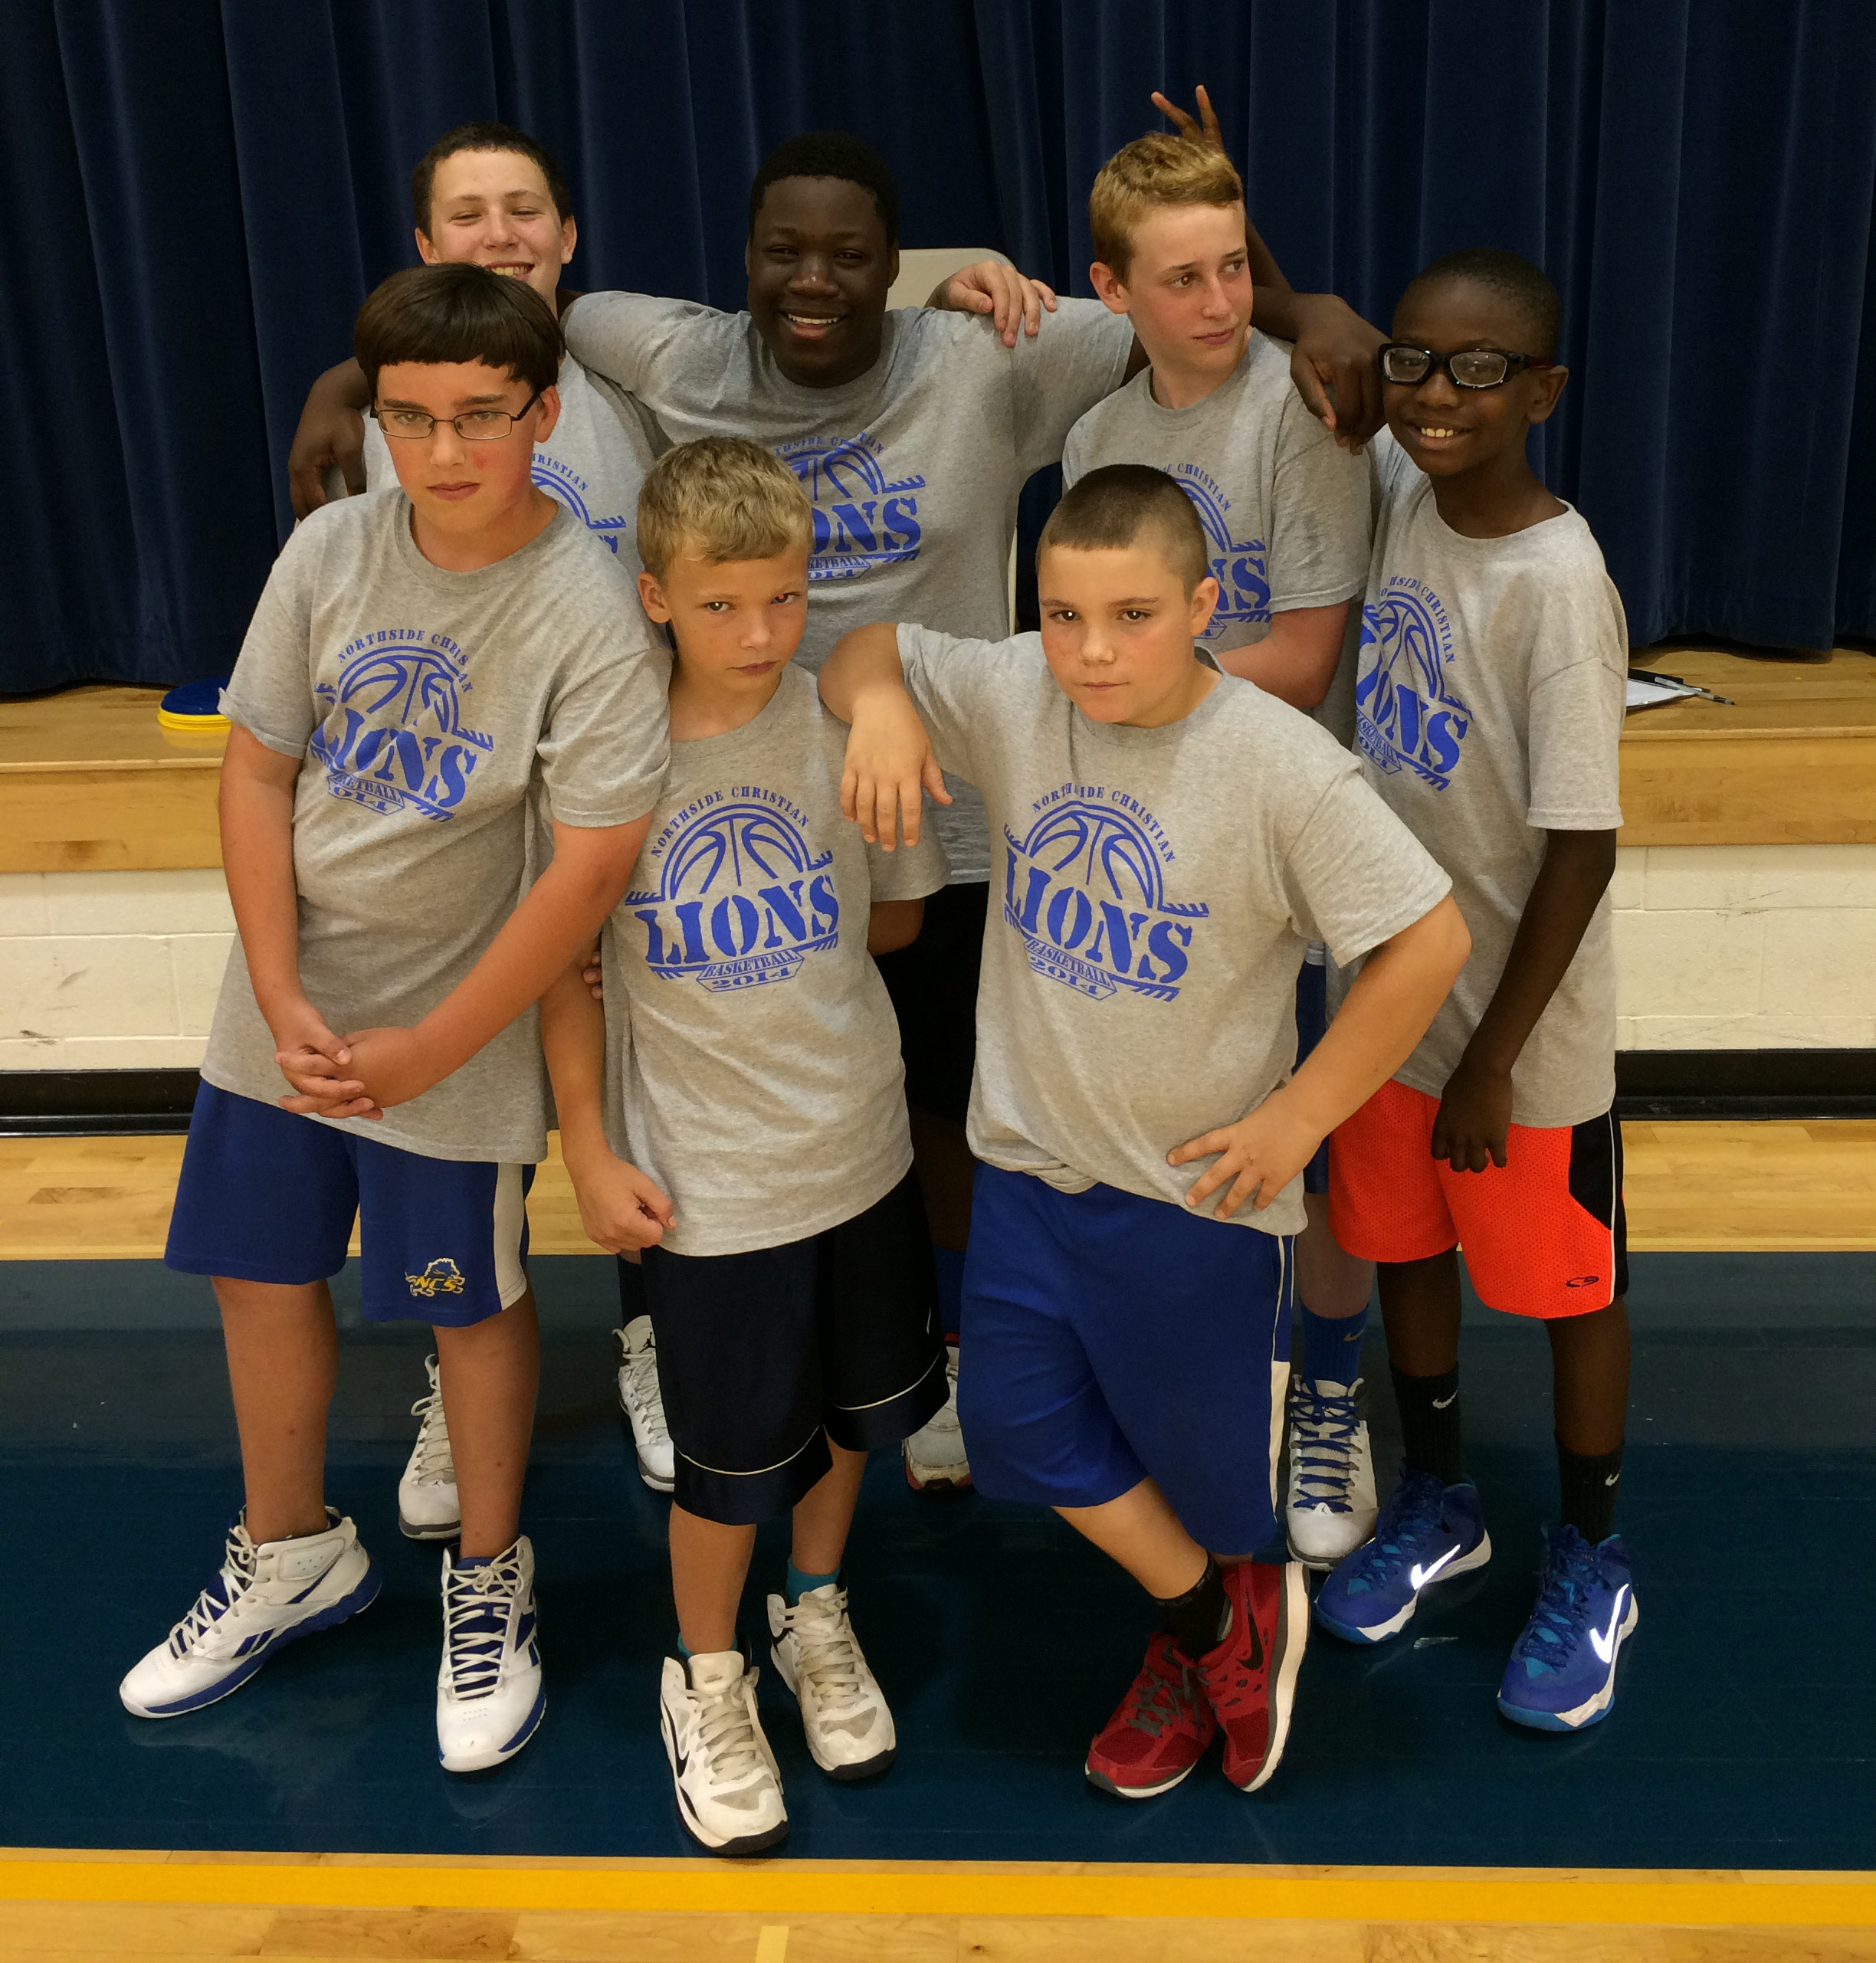 Lions Summer Sports Camps